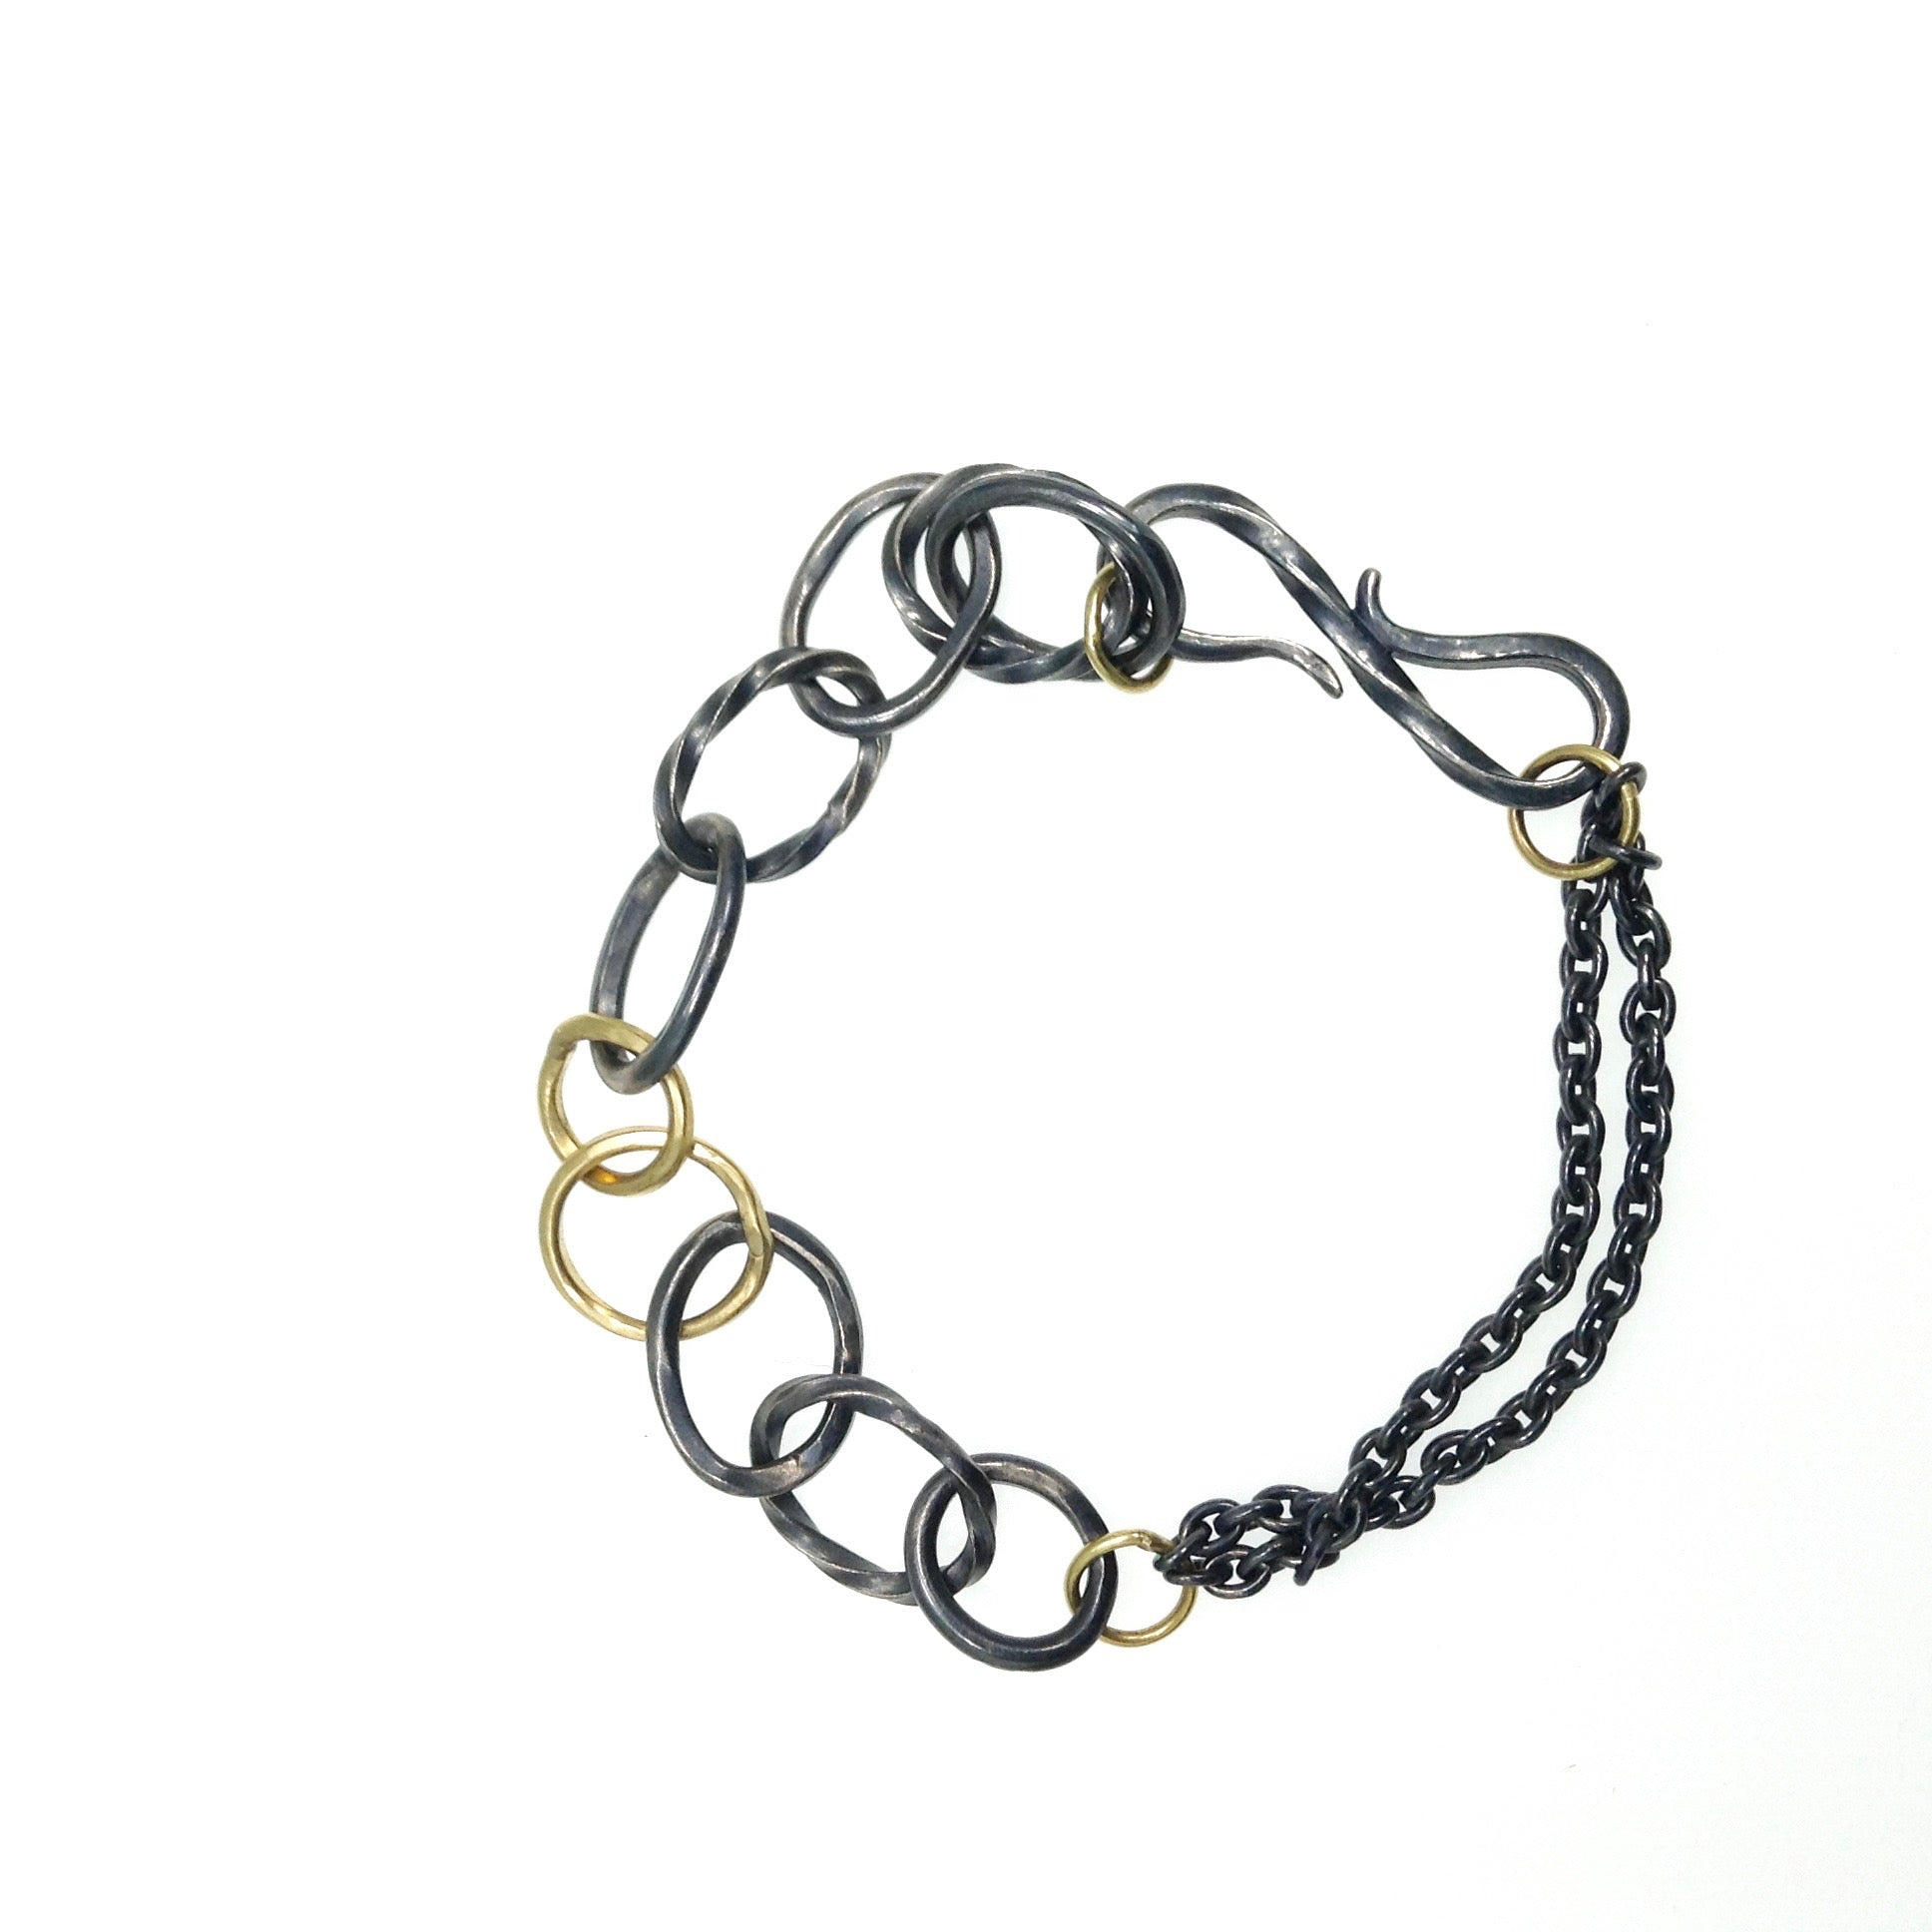 Sarah McGuire Oxidized Sterling Link Bracelet with 18k